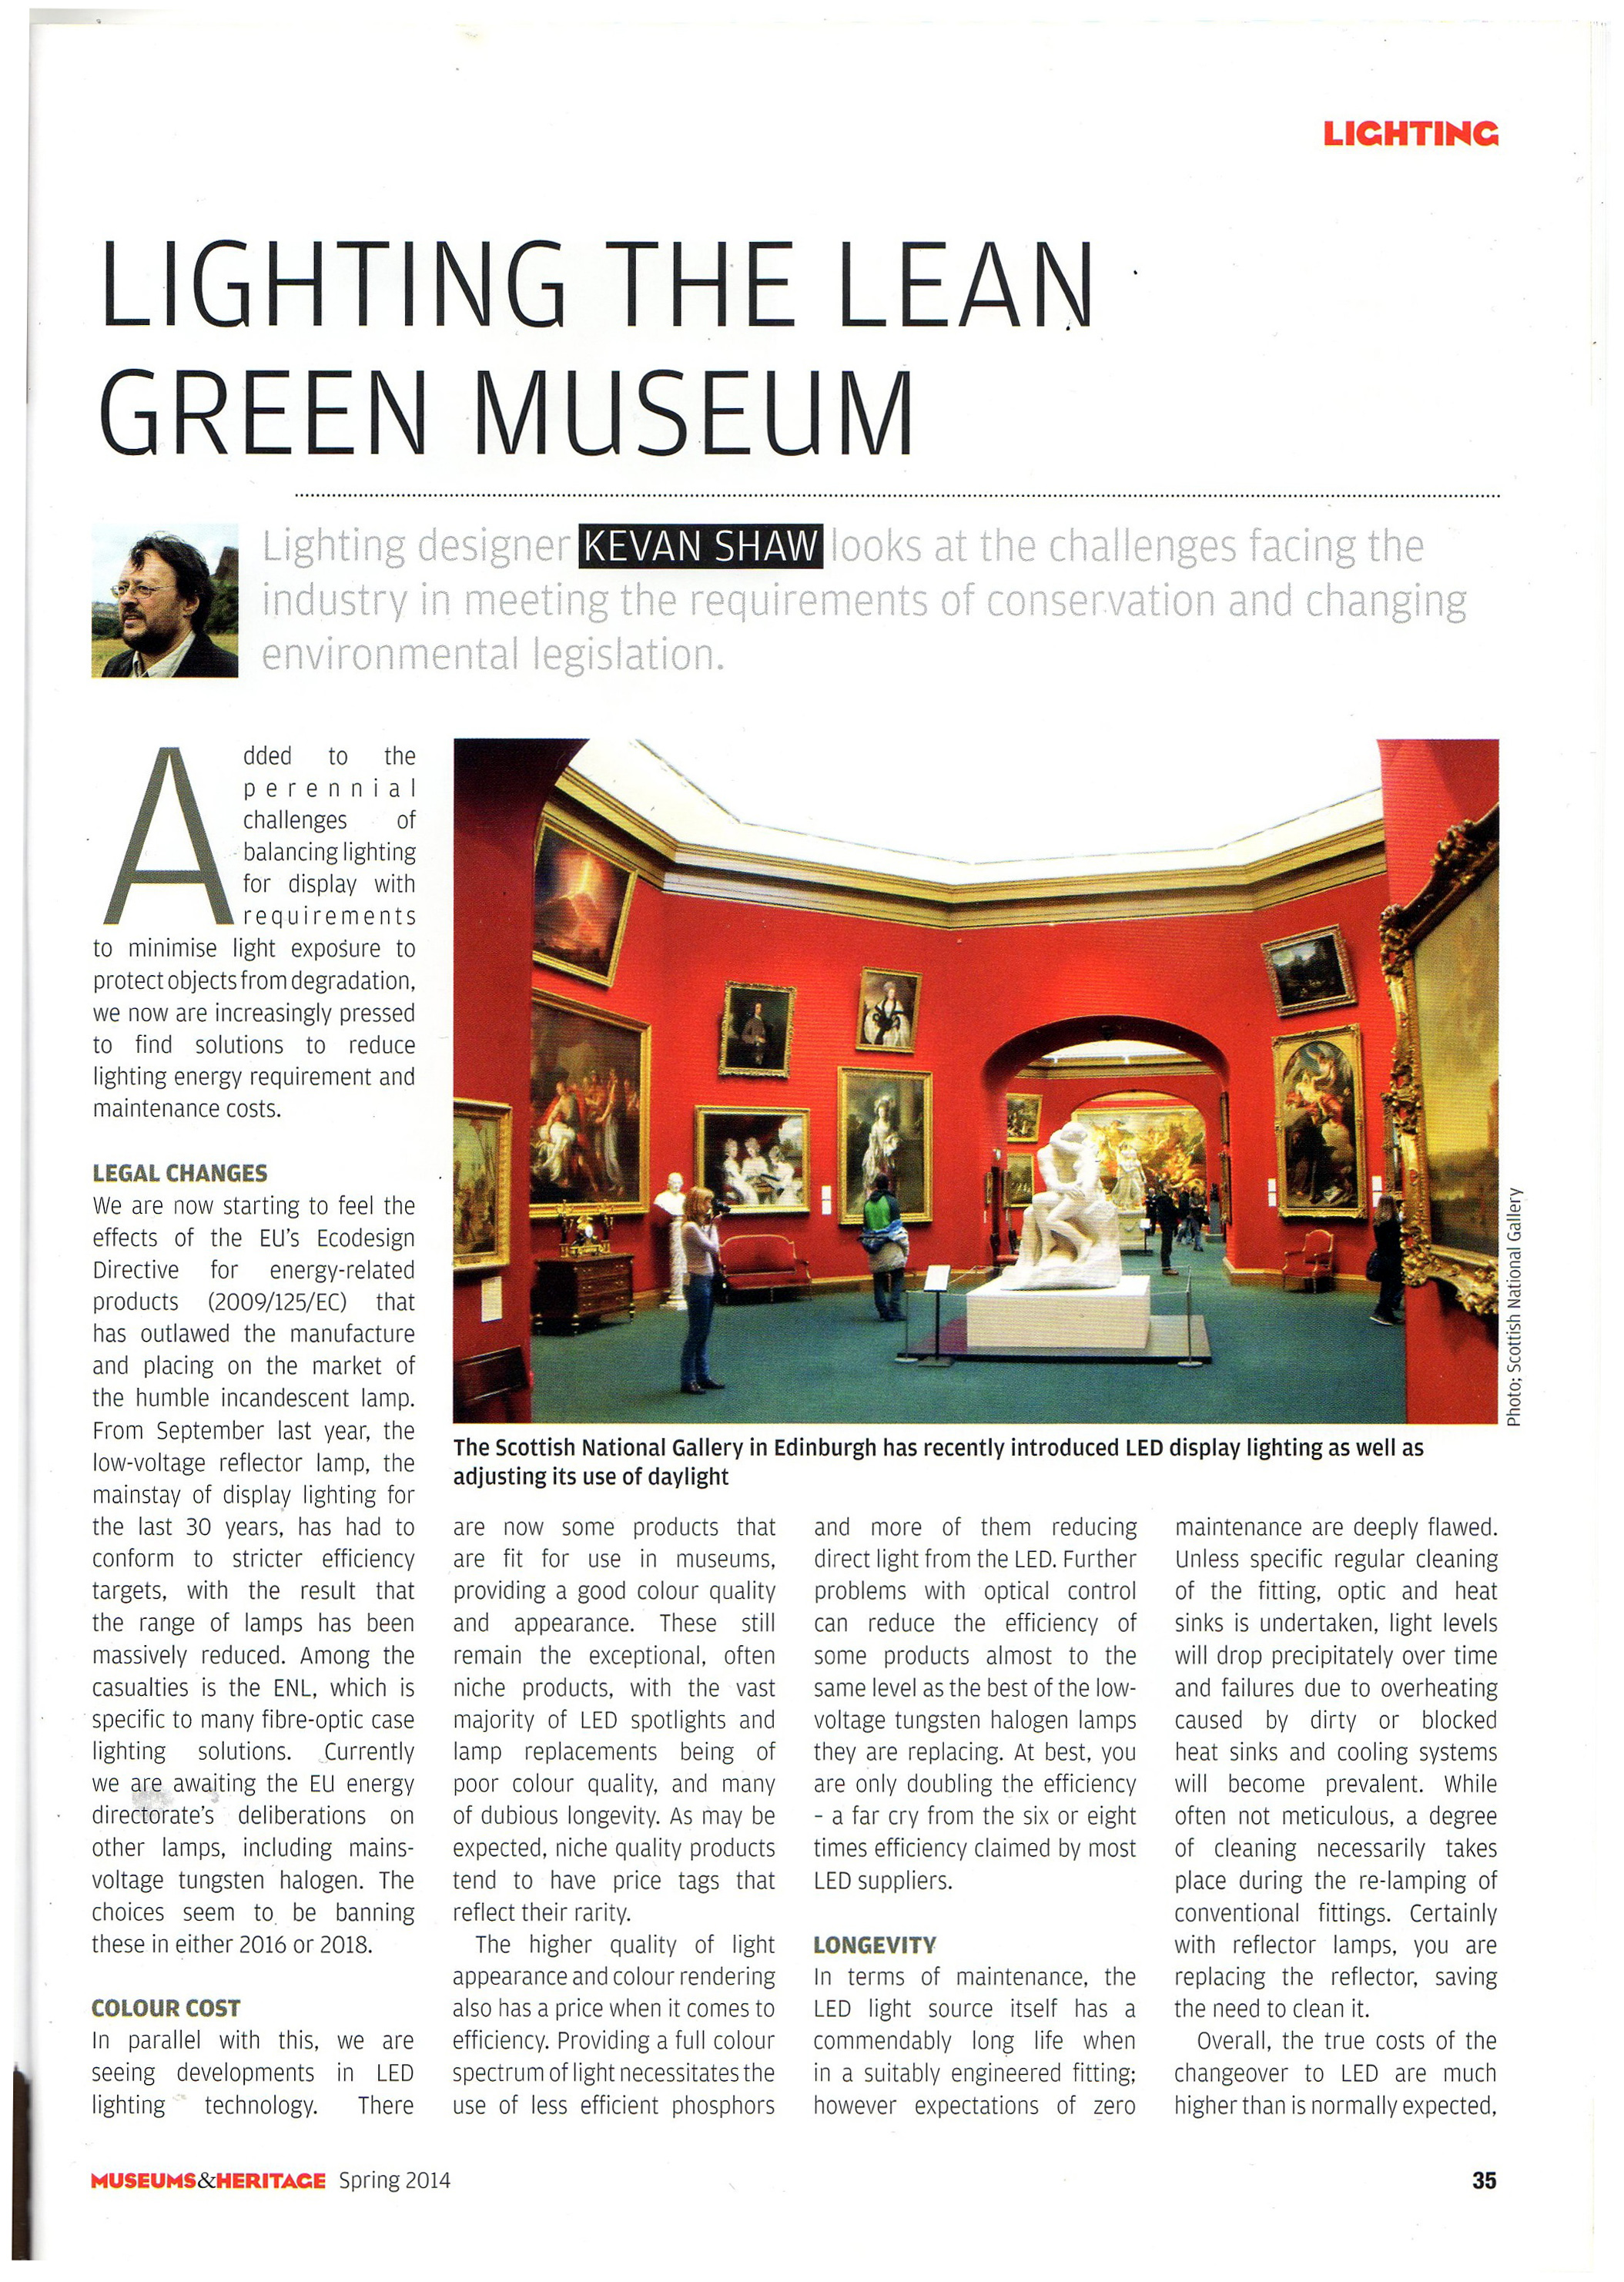 Lighting the Lean Green Museum